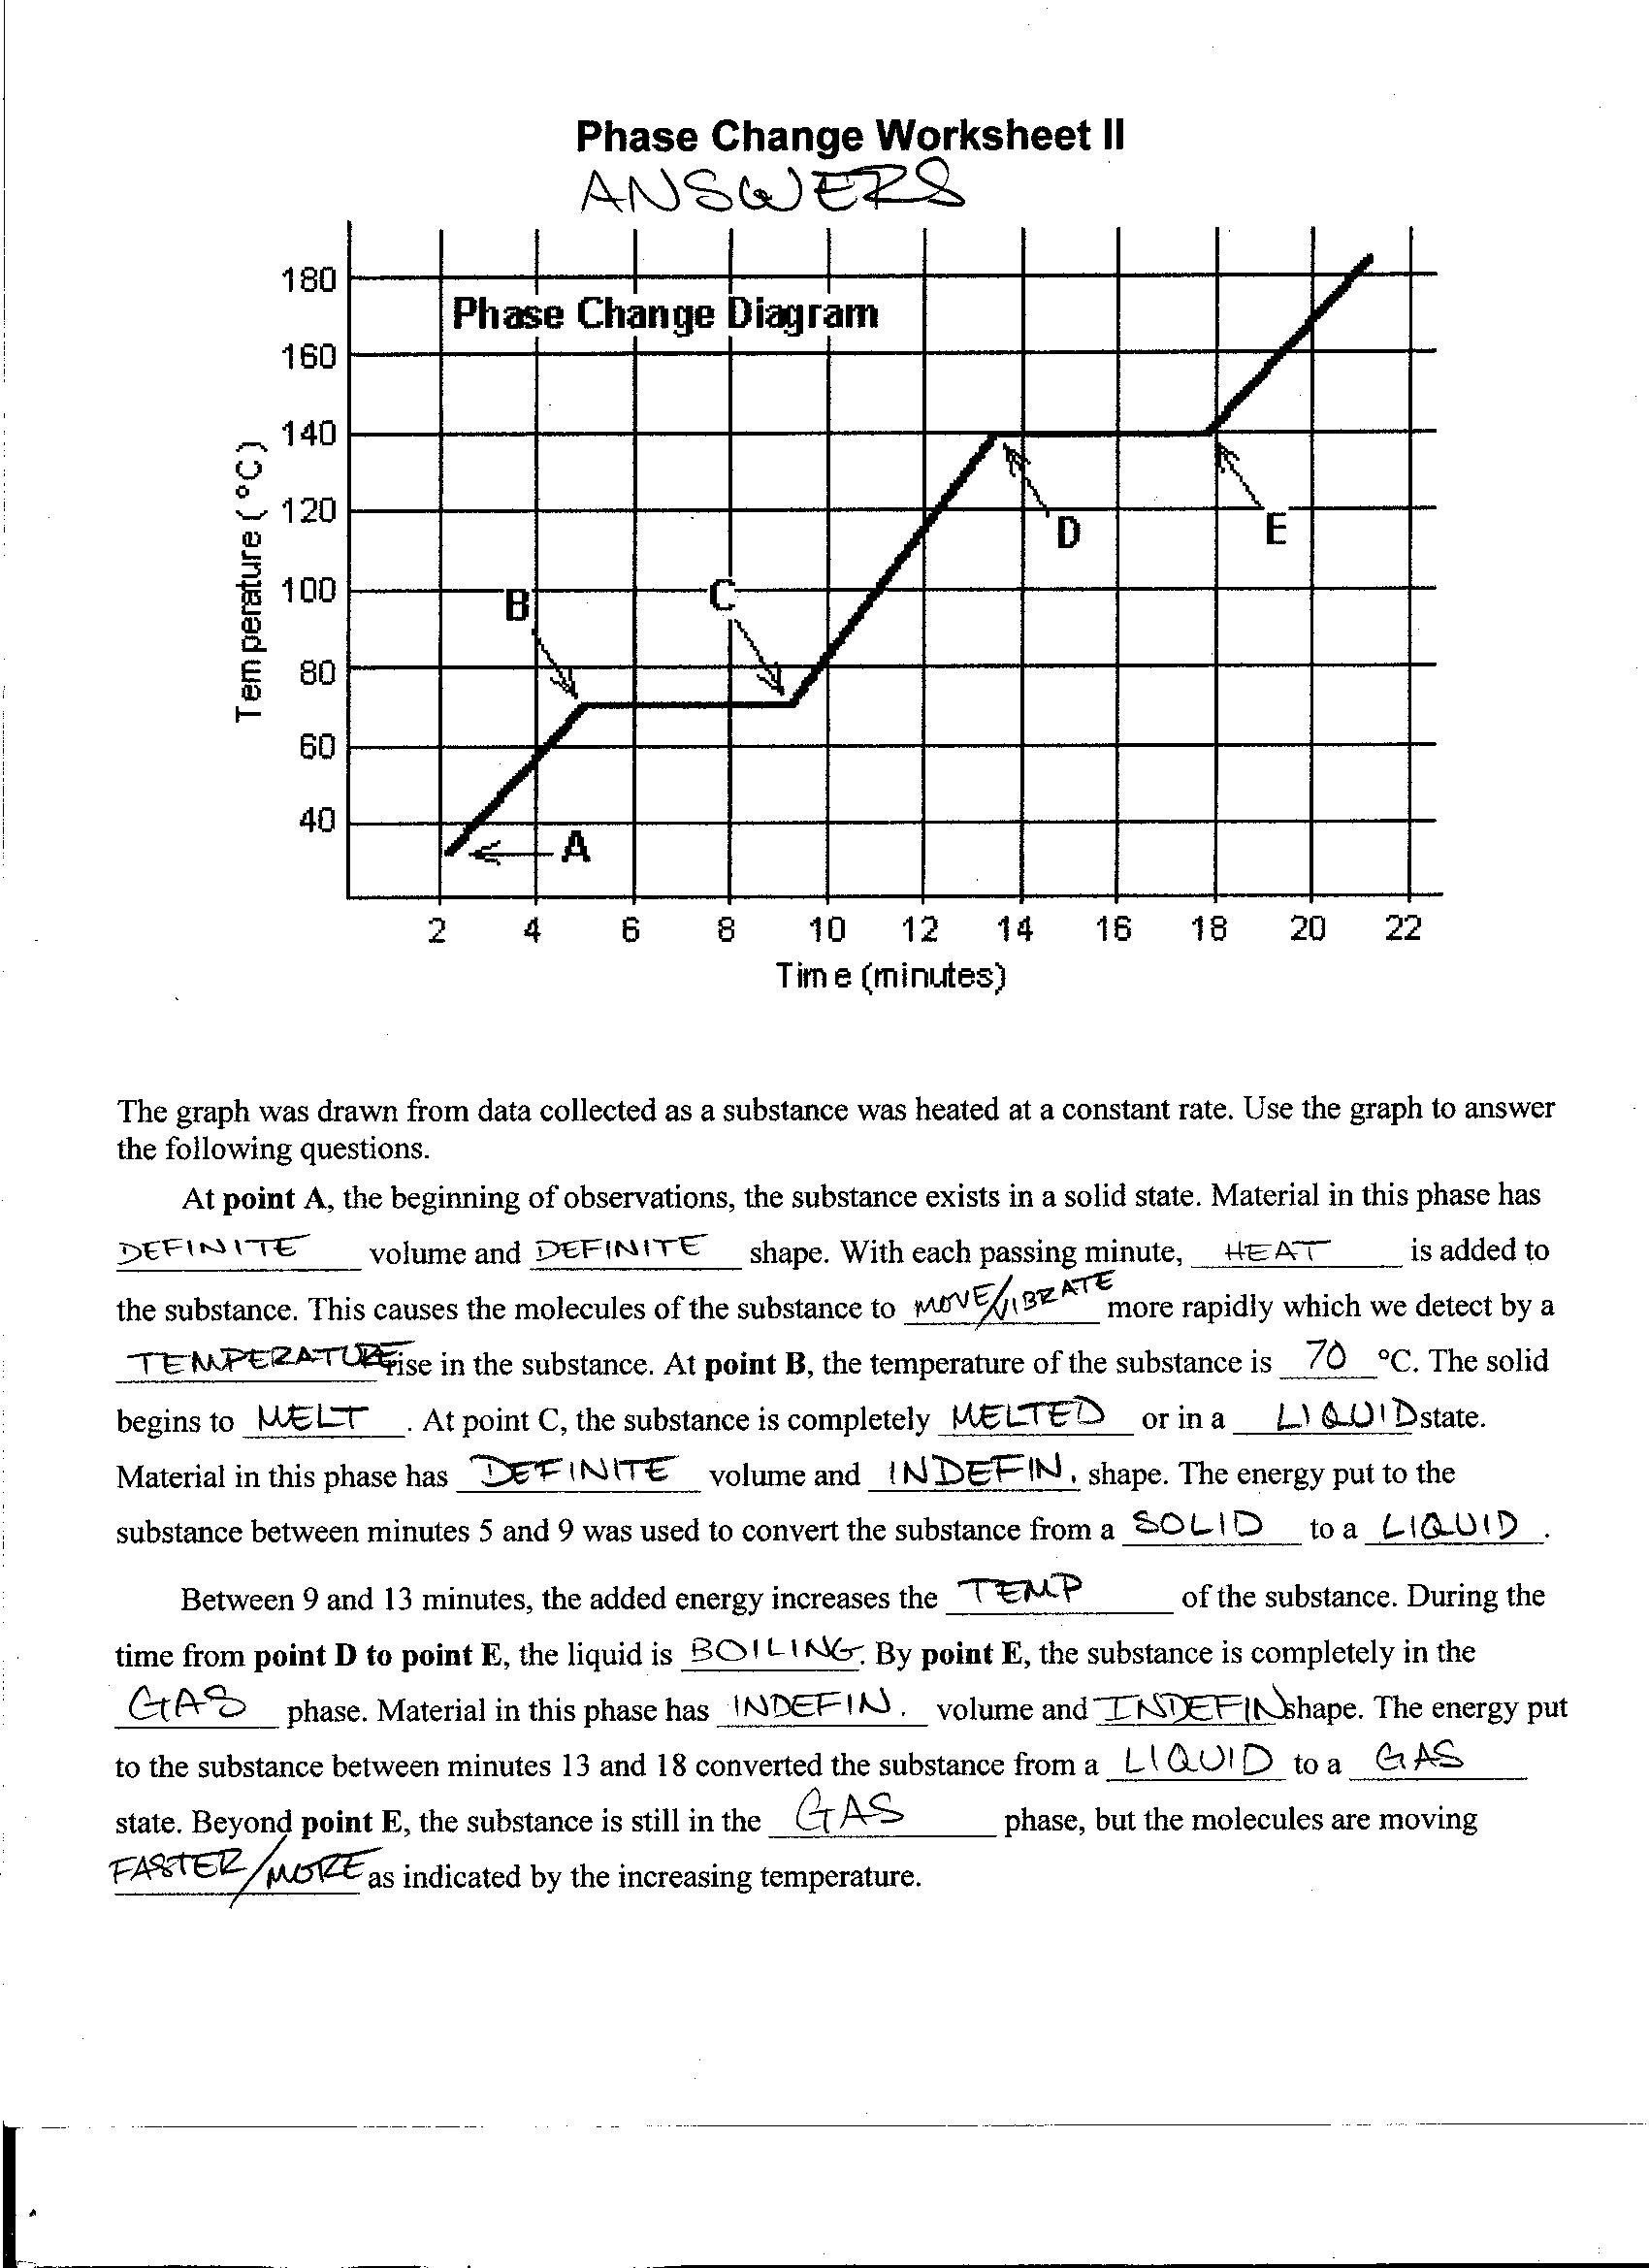 Phase Change Worksheet With Answers Free Worksheets Library – Phase Diagram Worksheet Answers